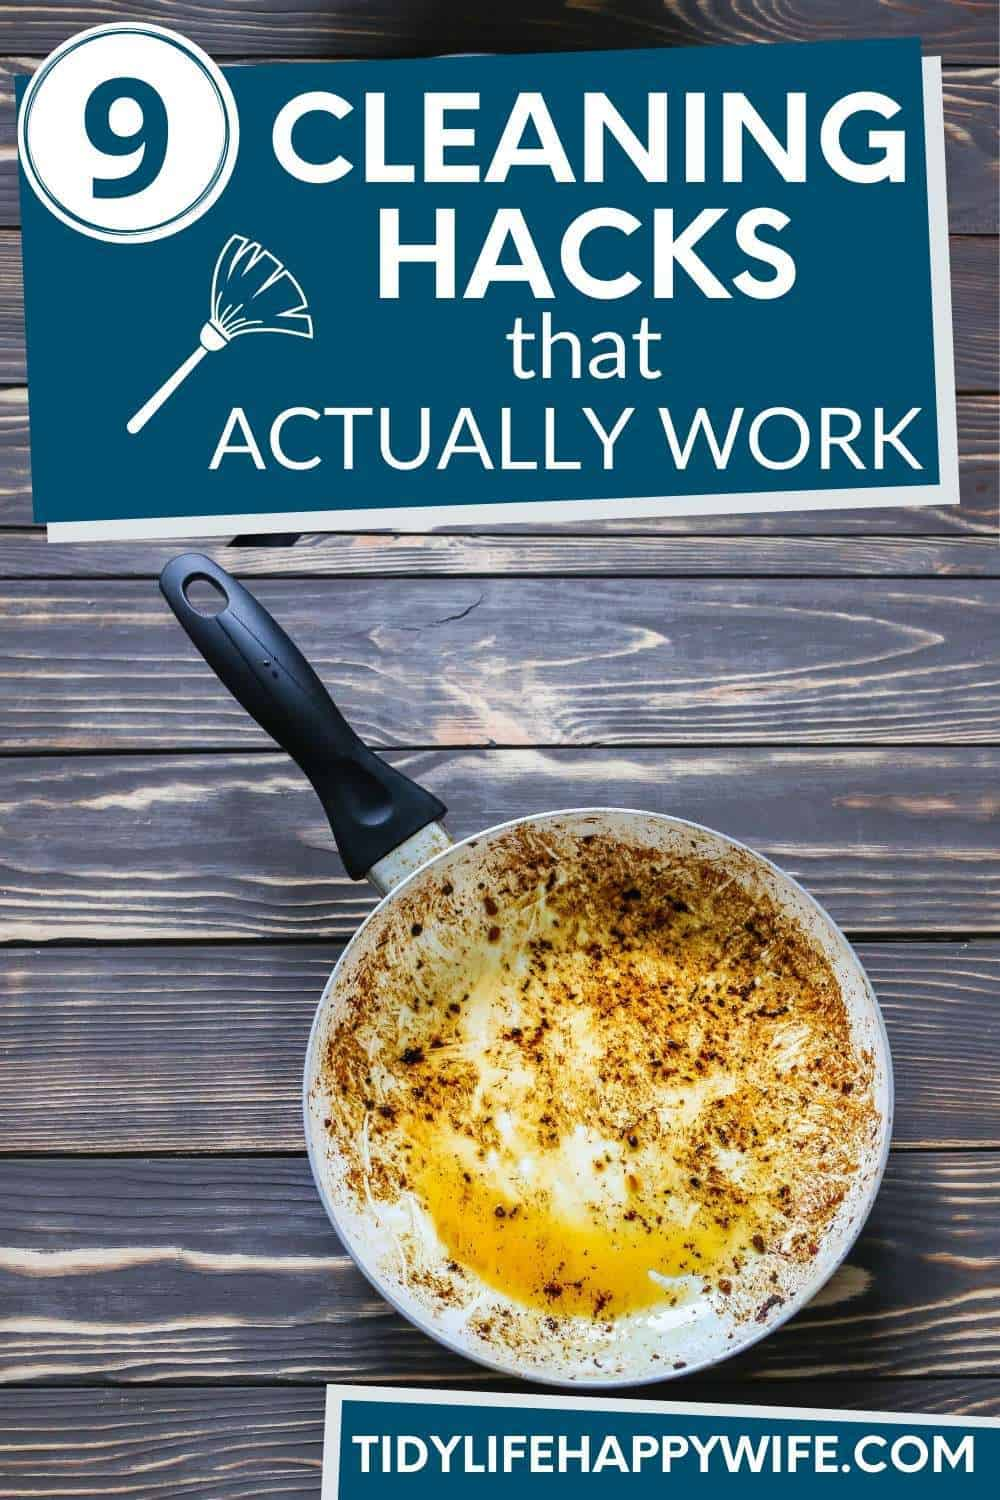 Cleaning hacks can be hit and miss, but here are 9 unusual cleaning hacks that actually work. How to clean burnt-on food, get your windows streak-free, and clean your toilet without scrubbing. Check out these tips today. via @Tidylifehappywife